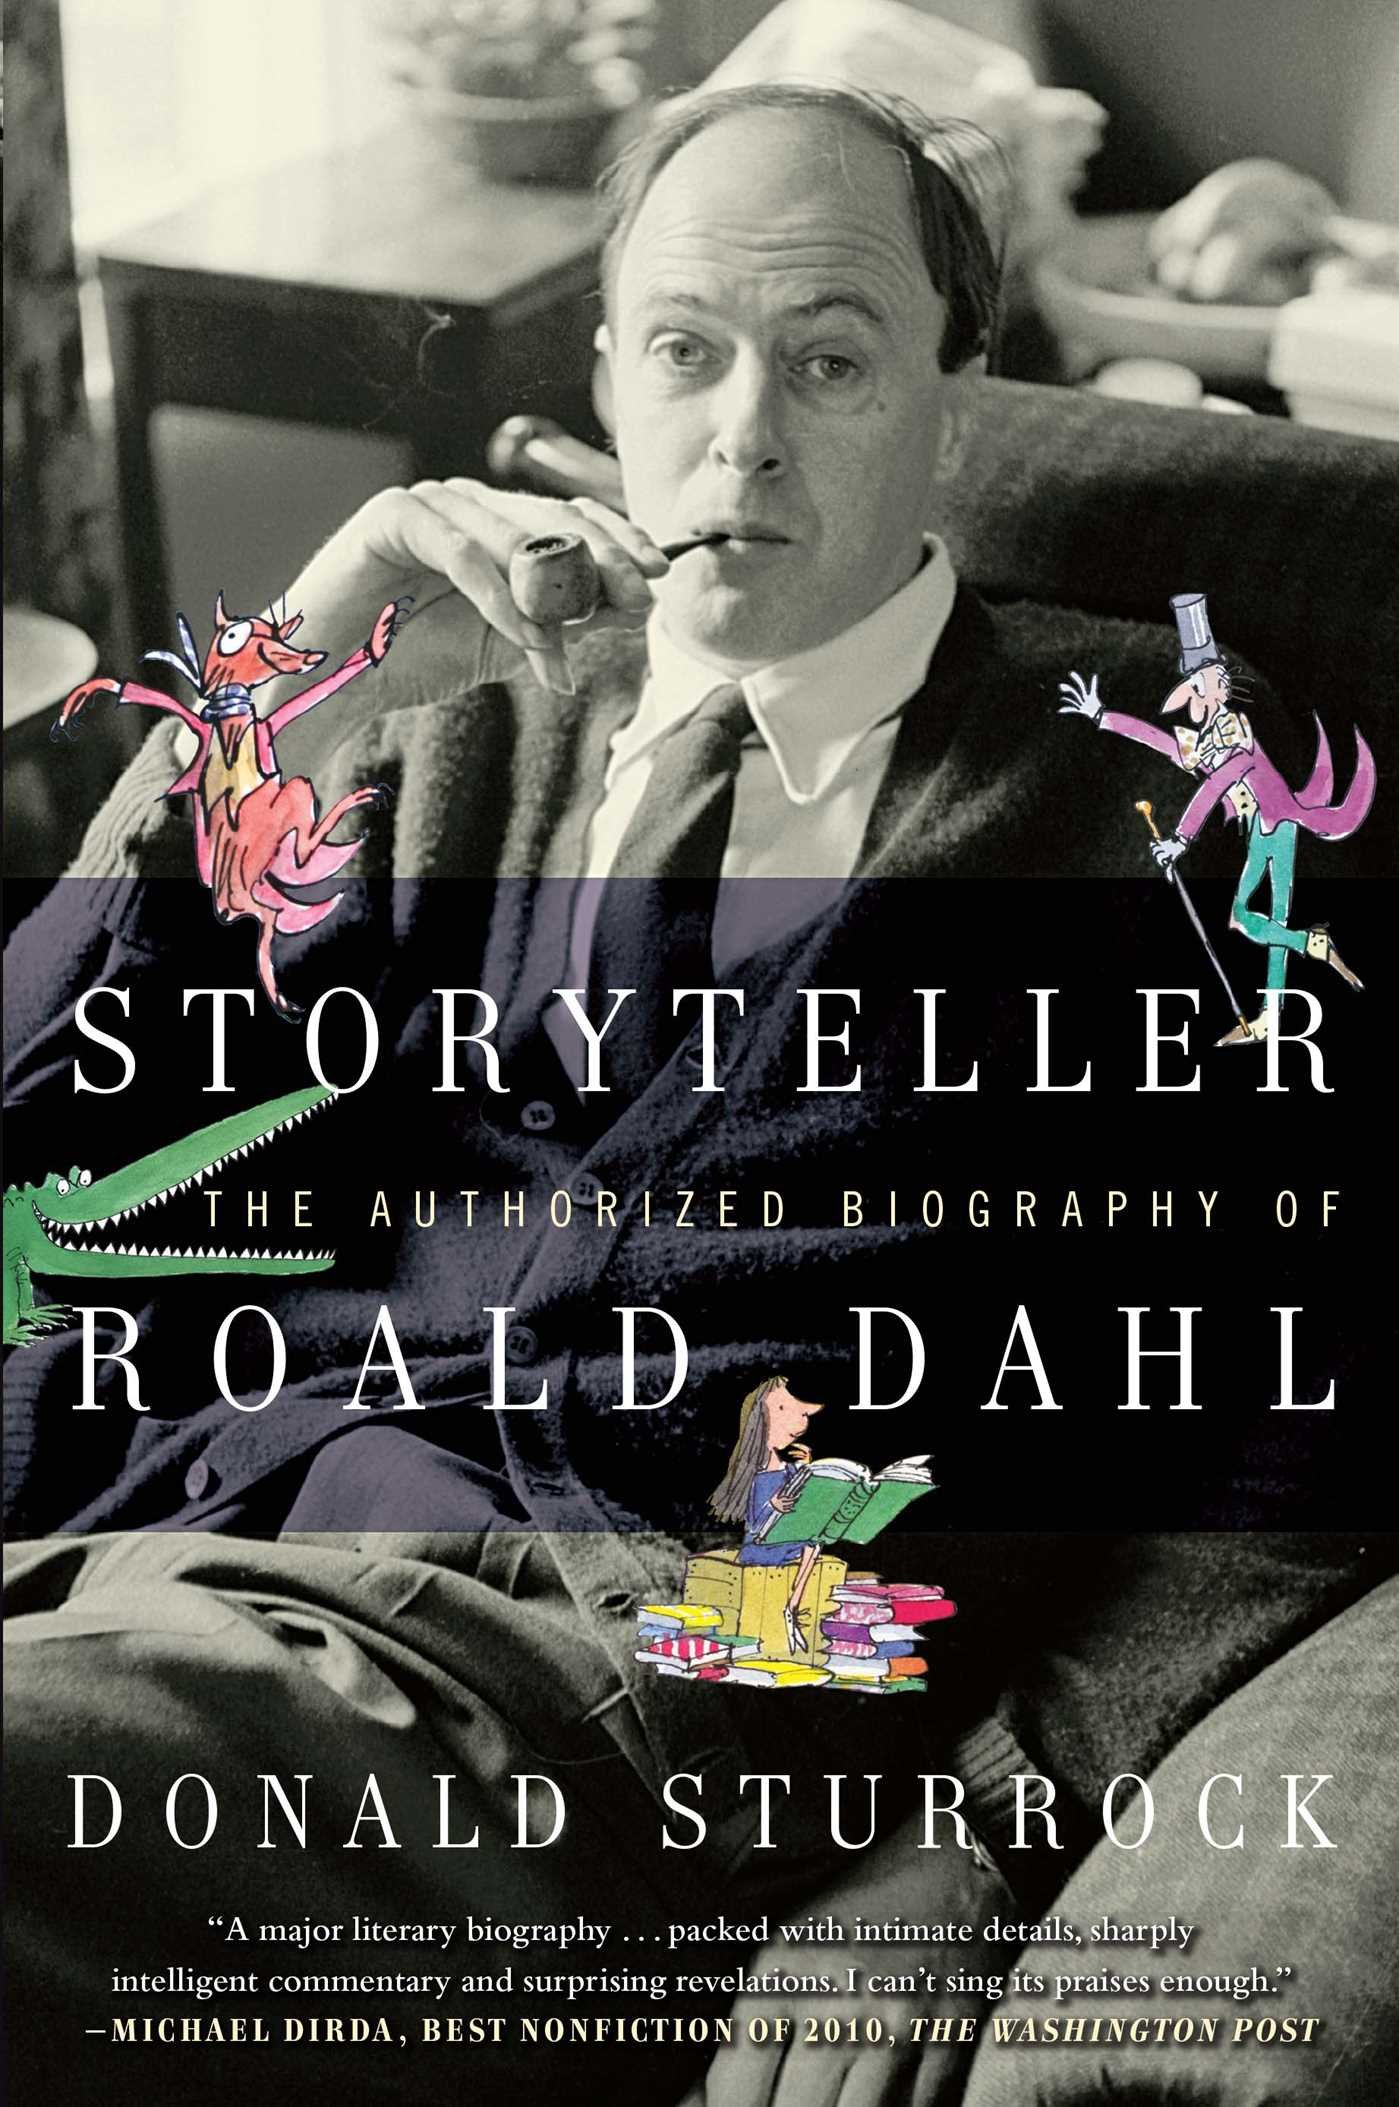 Storyteller: The Authorized Biography of Roald Dahl by Donald Sturrock